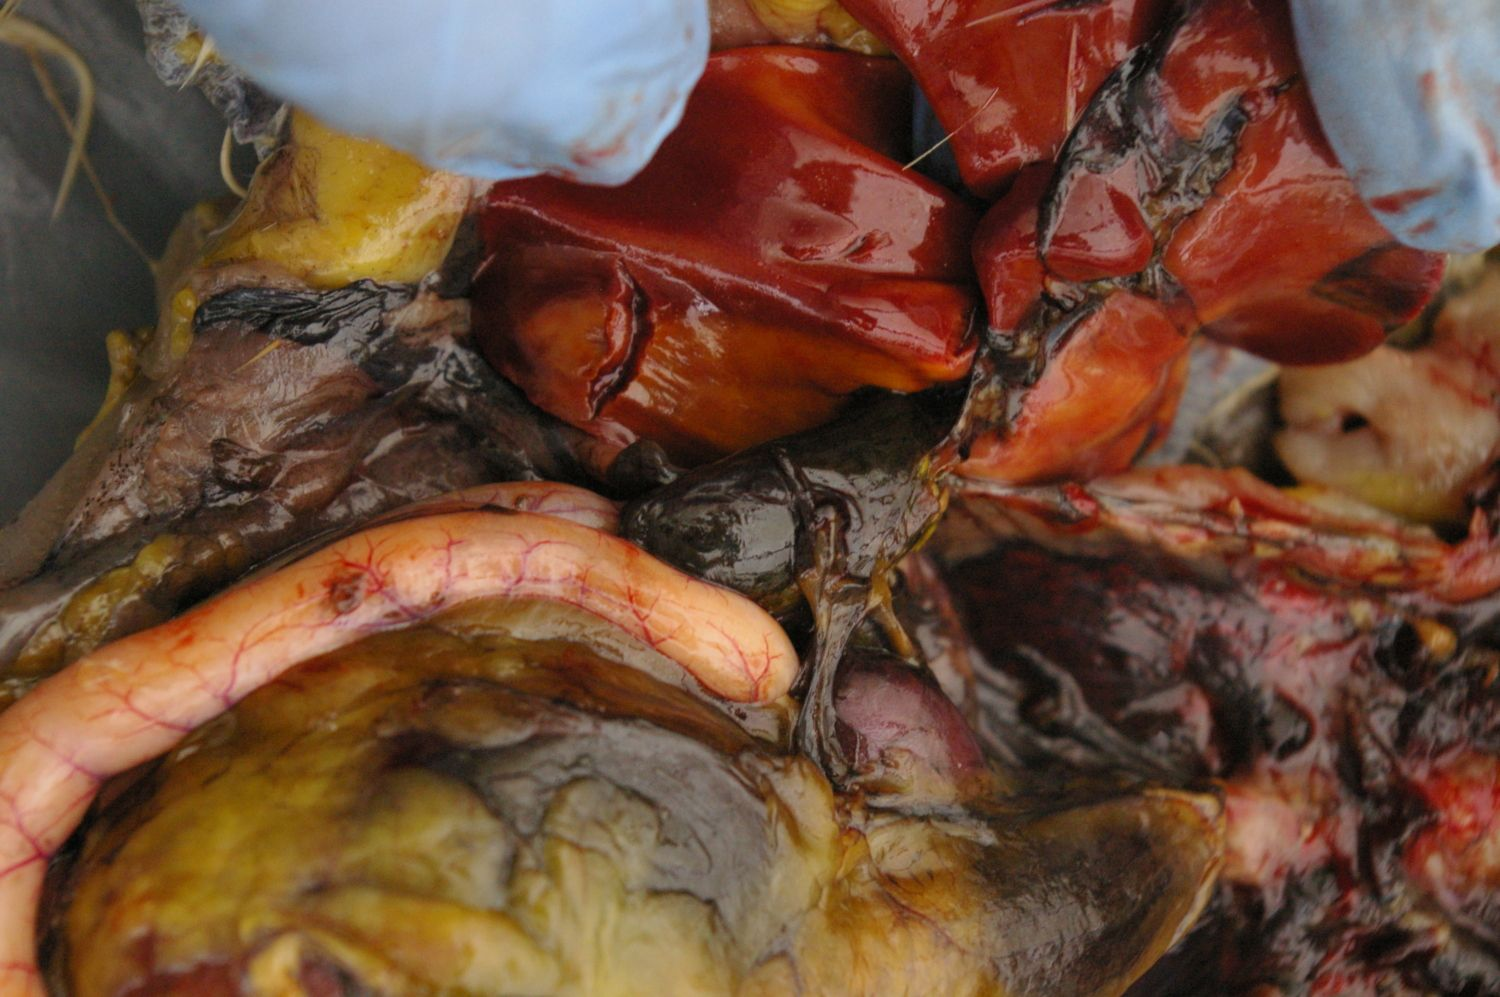 Black sac in the centre of the picture is the Gall Bladder. It secretes digestive juices